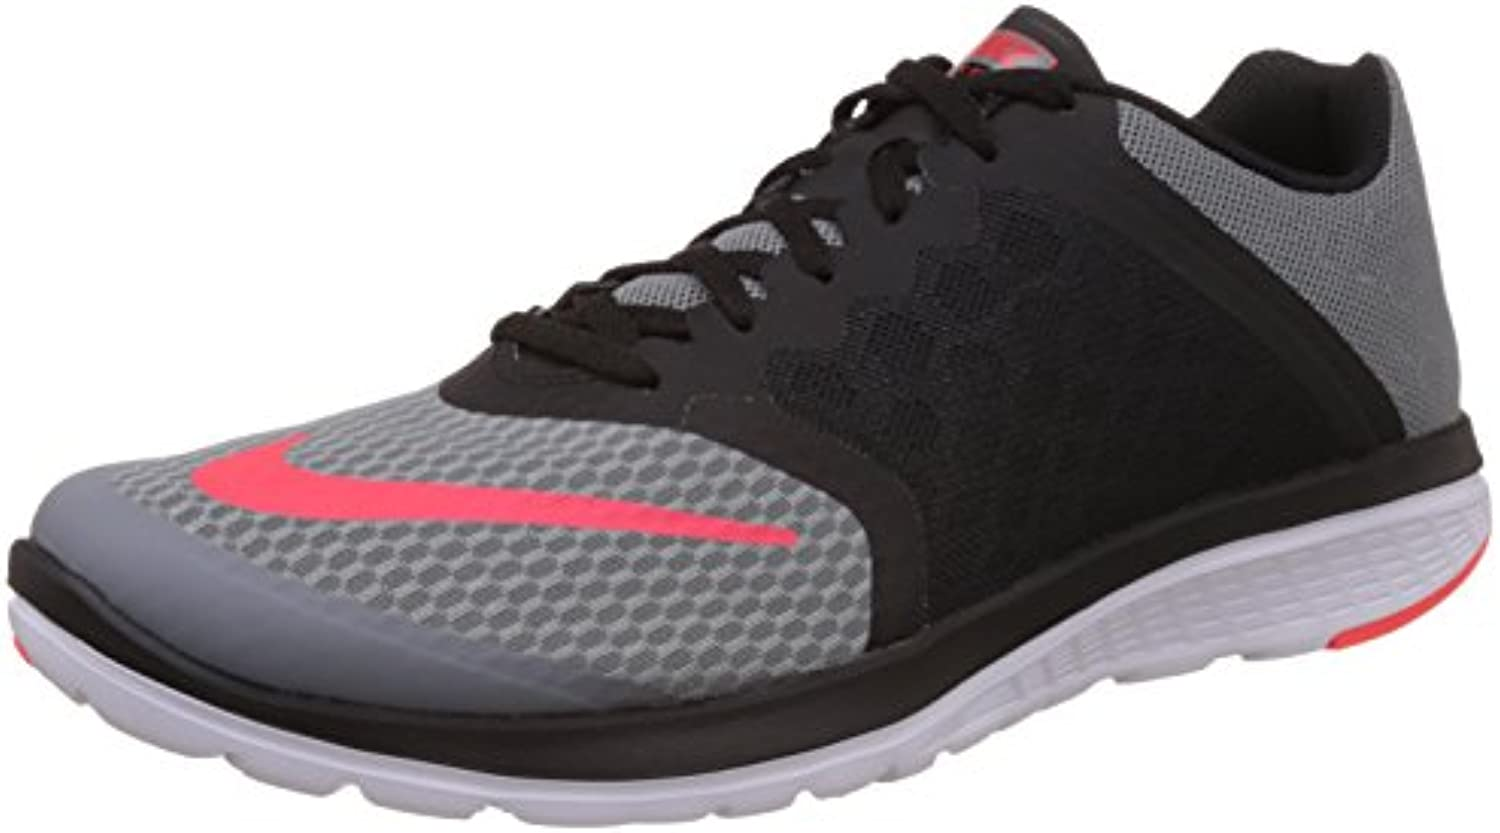 Nike Herren Fs Lite Run 3 Laufschuhe  Pure Platinum/Lyon Black Black Total Orange 001  43 EU